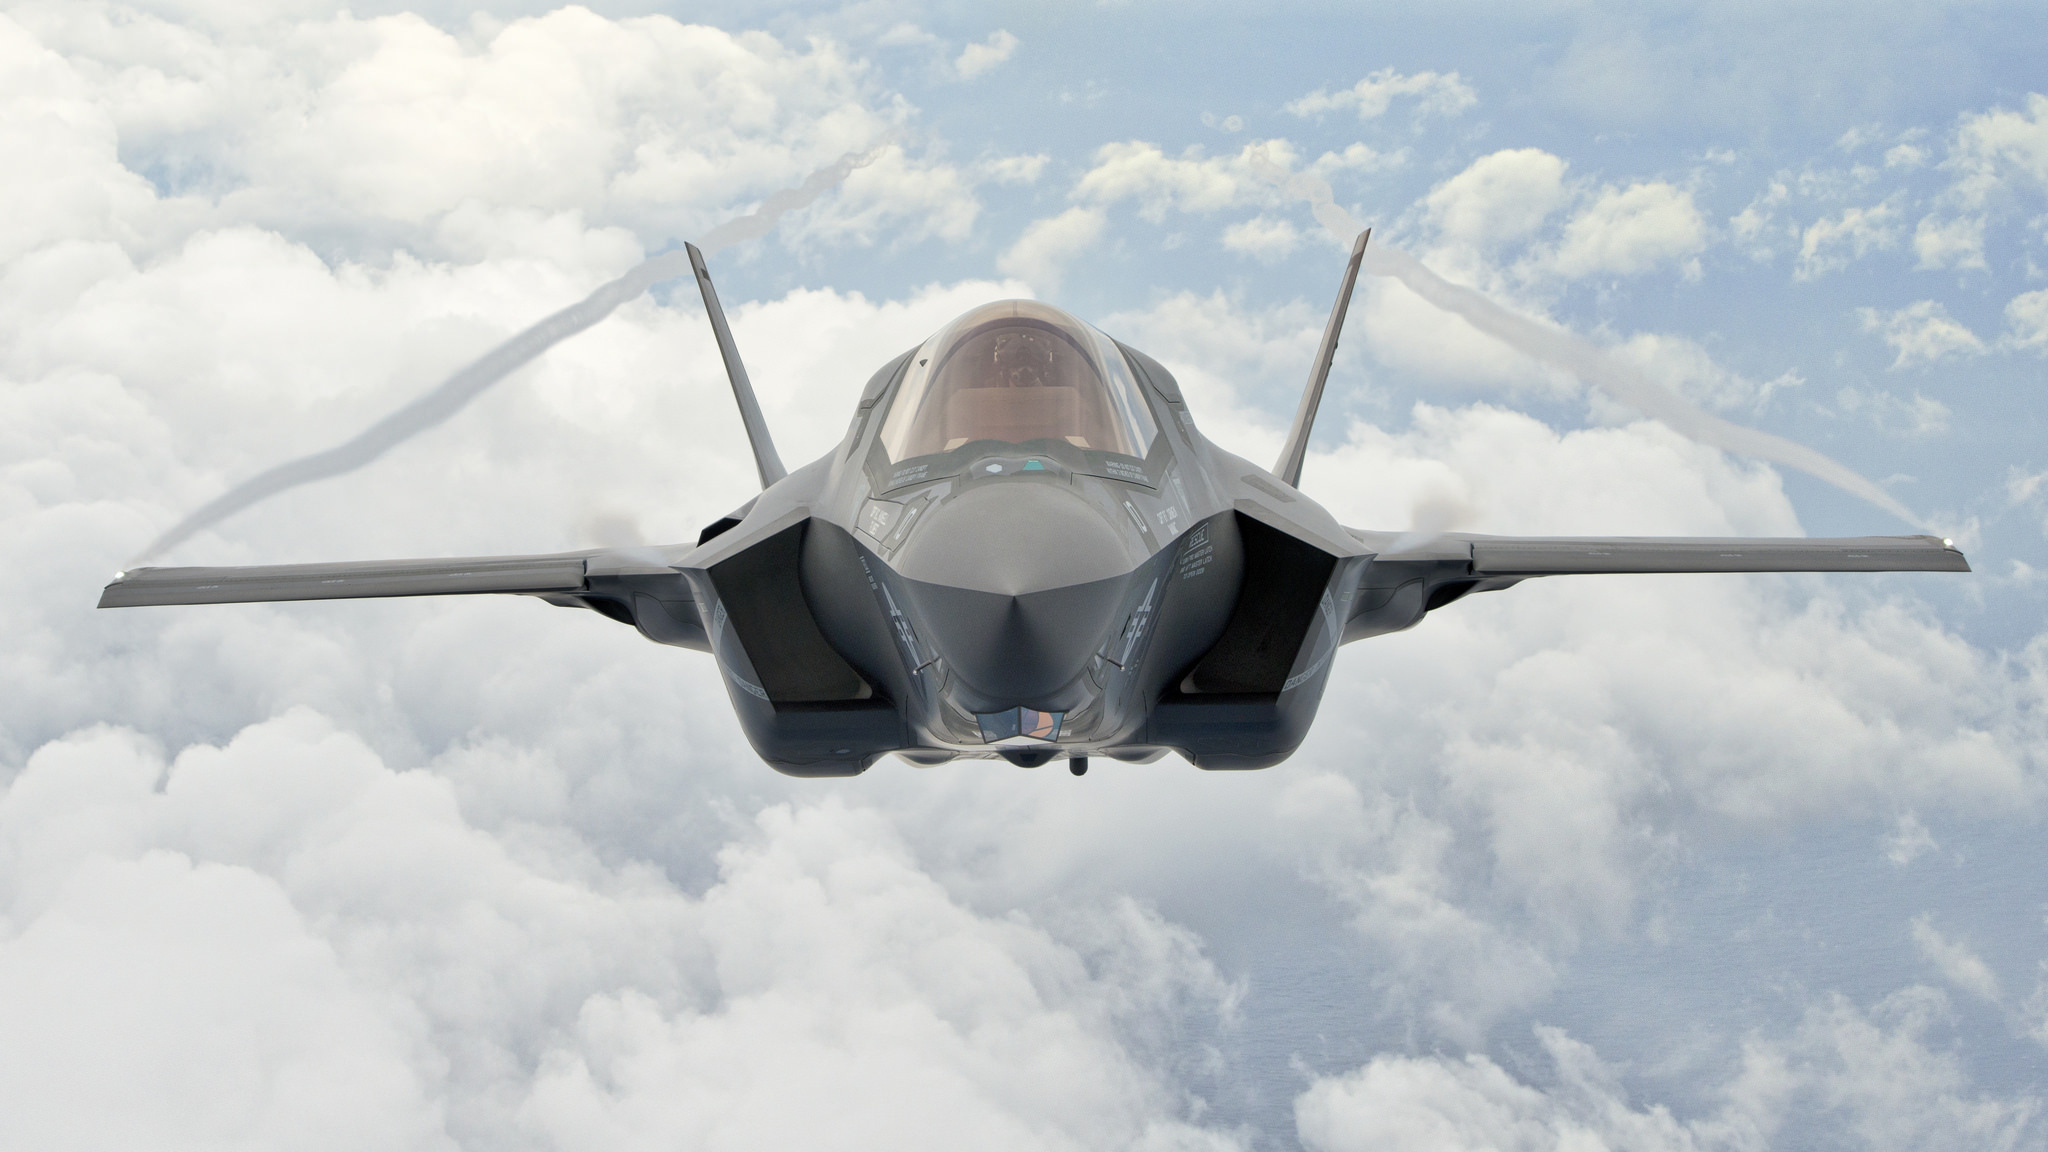 f 35 fighter wallpaper - photo #21